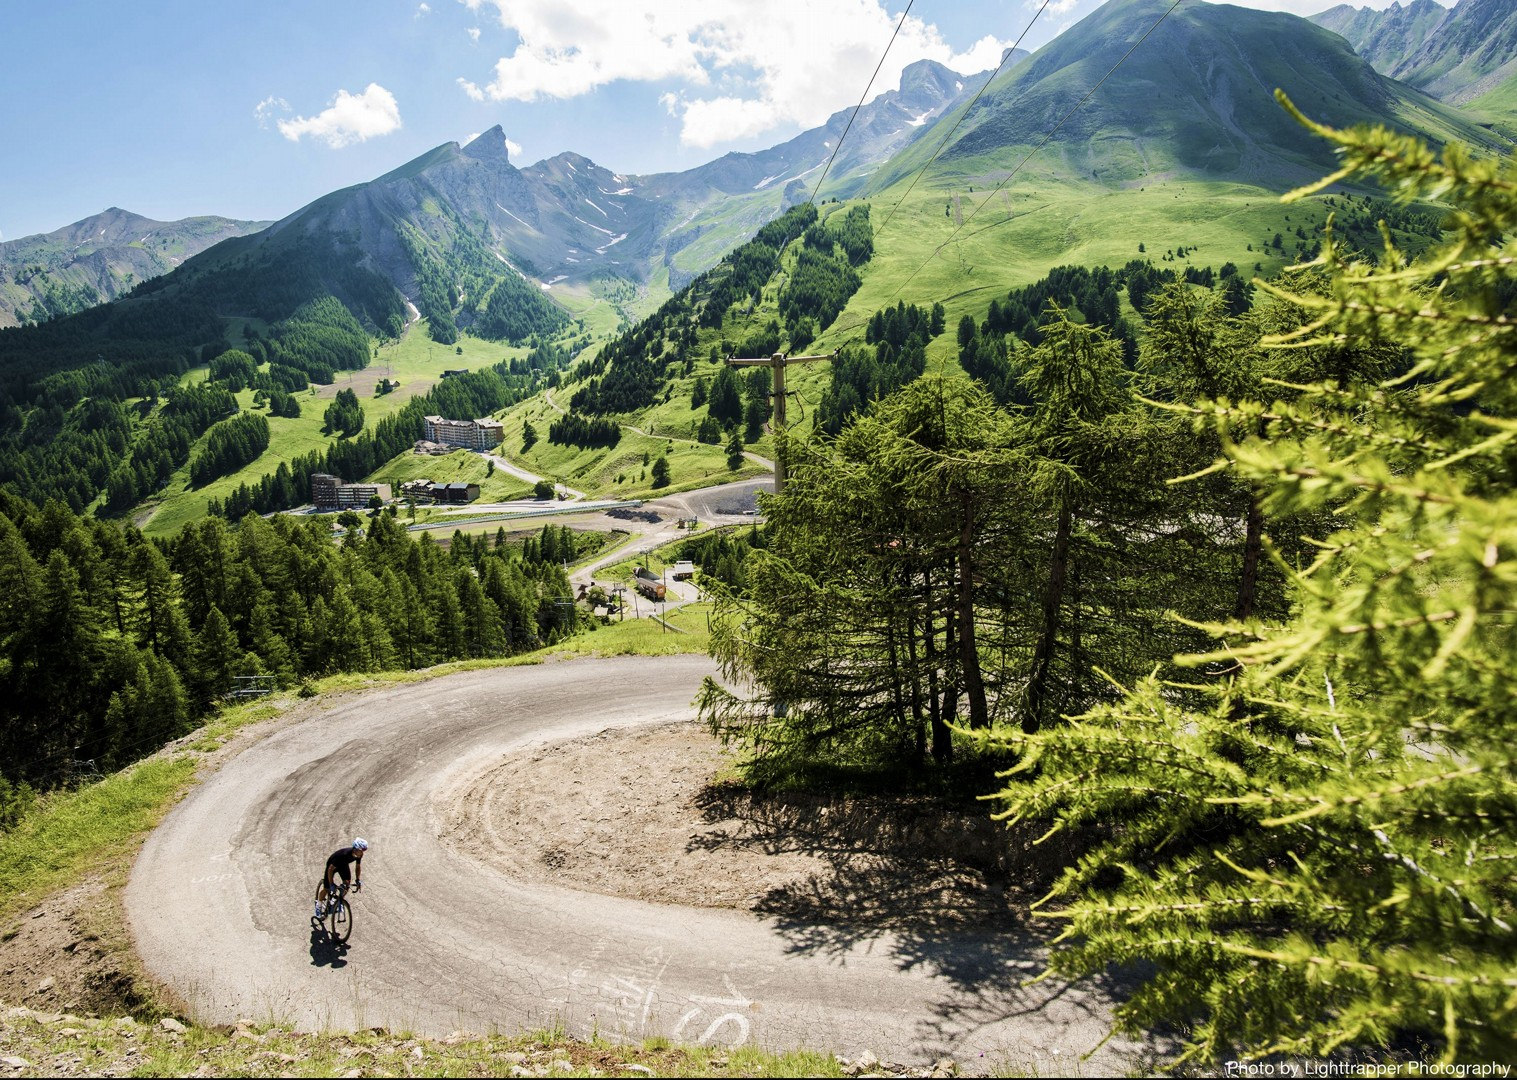 tall-tour-de-france-climbs-alps-izoard-road-cycling-holiday.jpg - France - Raid Alpine - Guided Road Cycling Holiday - Road Cycling